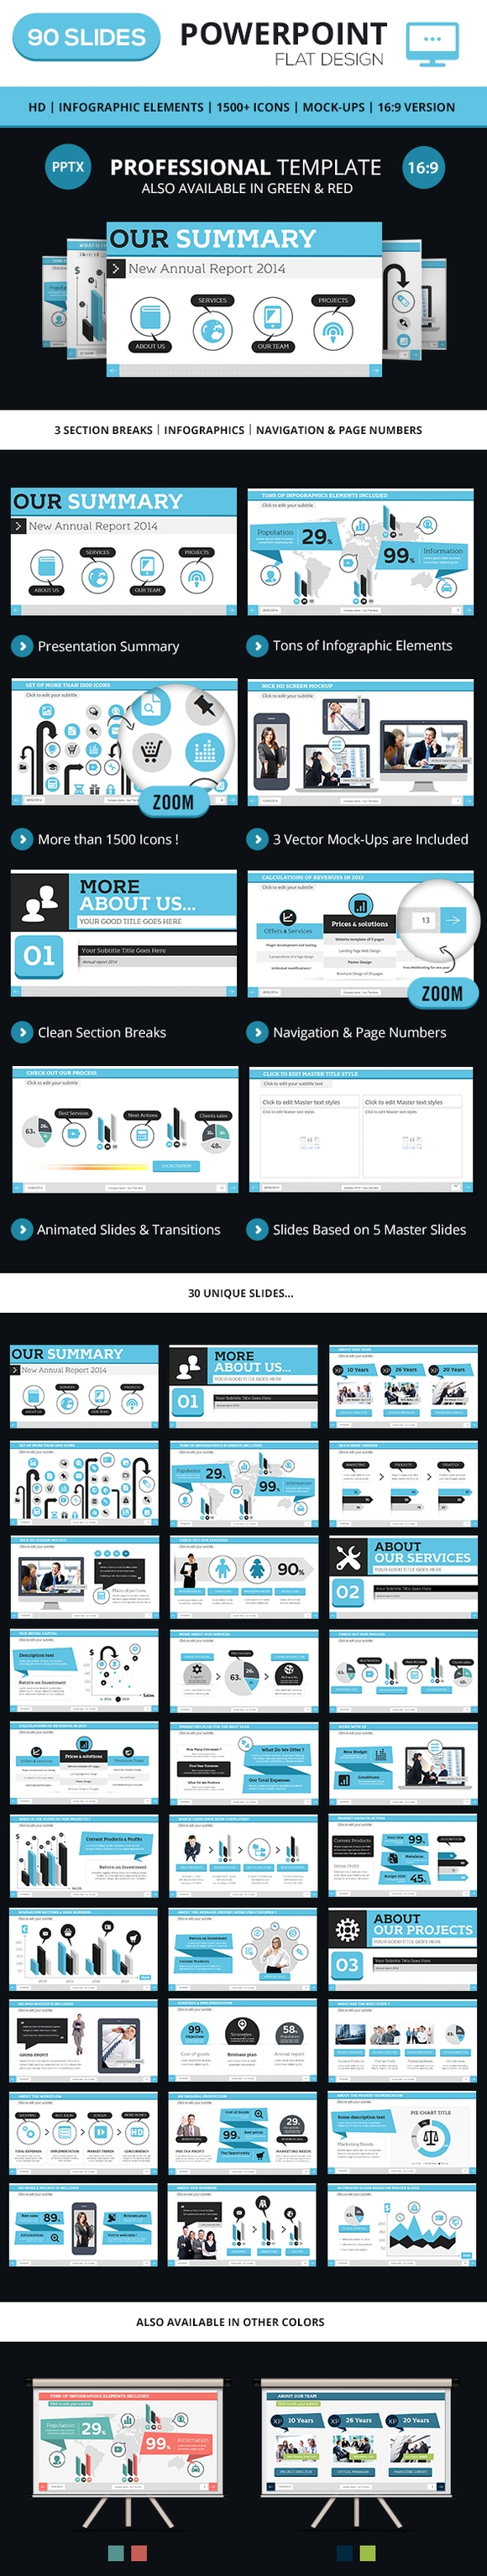 Modern PowerPoint Business Presentation Template - web design 2014